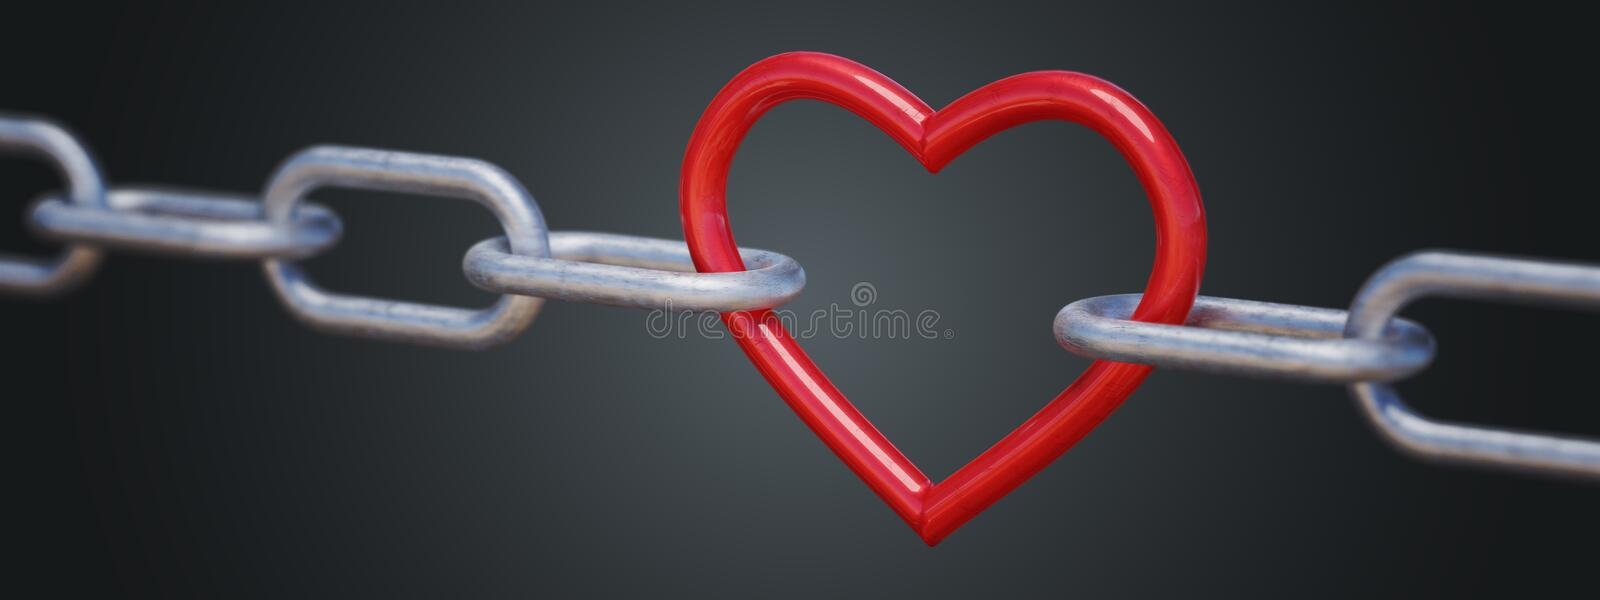 Red metalic heart in chain on black background. 3D rendered illustration.  stock illustration